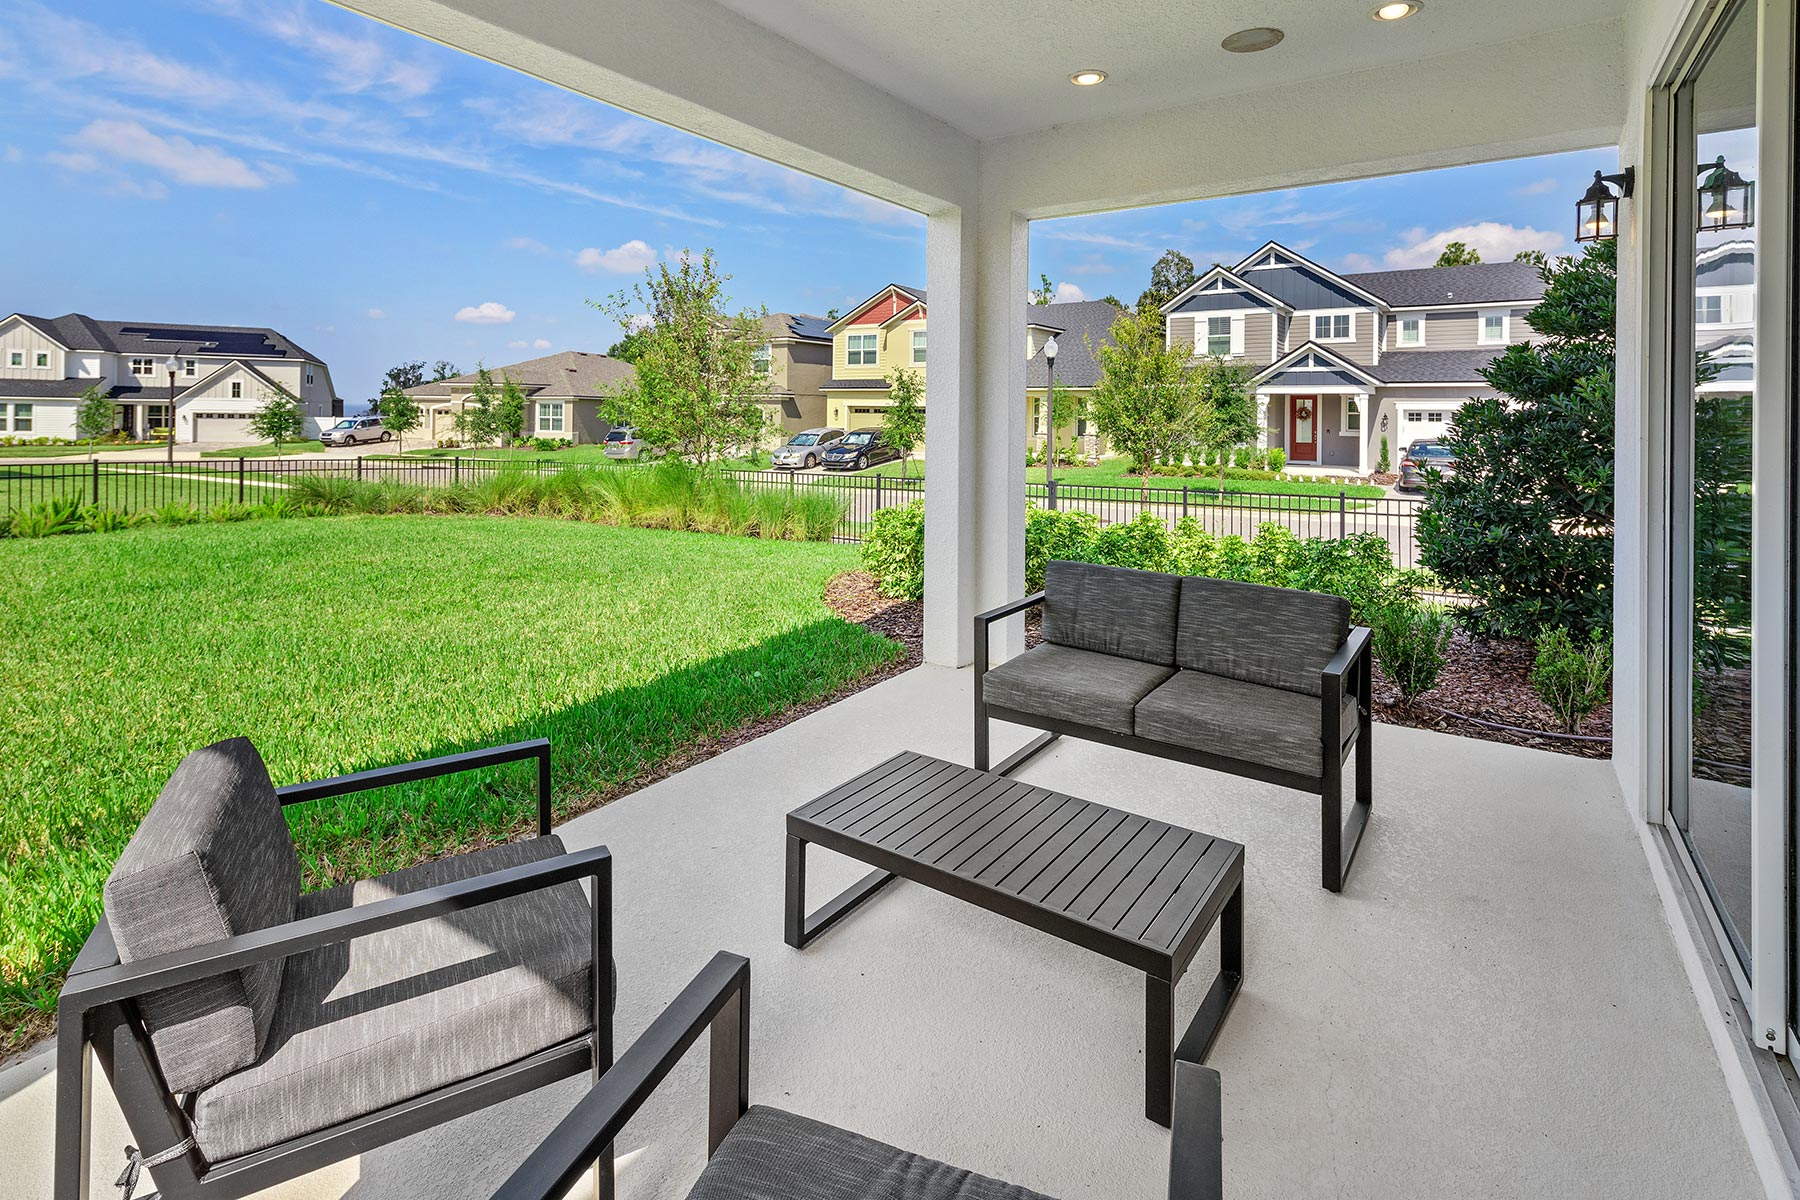 Campbell Plan Patio at Tohoqua in Kissimmee Florida by Mattamy Homes